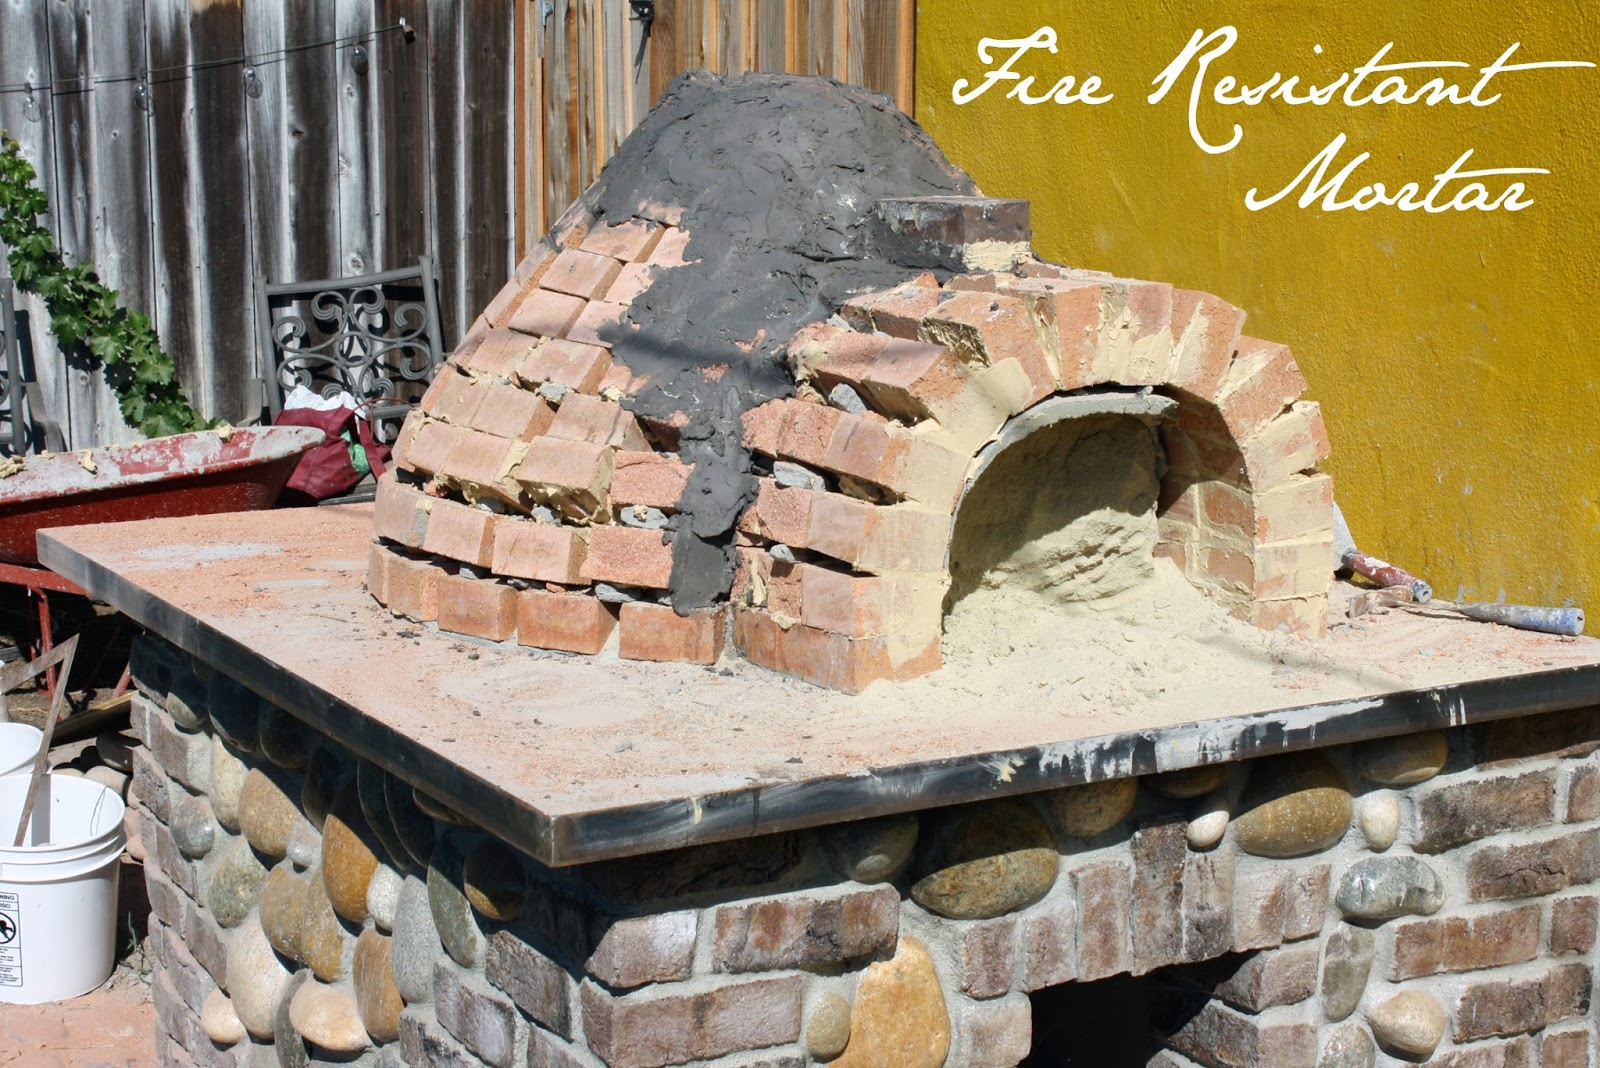 Fire Brick Mortar Mix : The tipsy terrier pub wood fired pizza oven